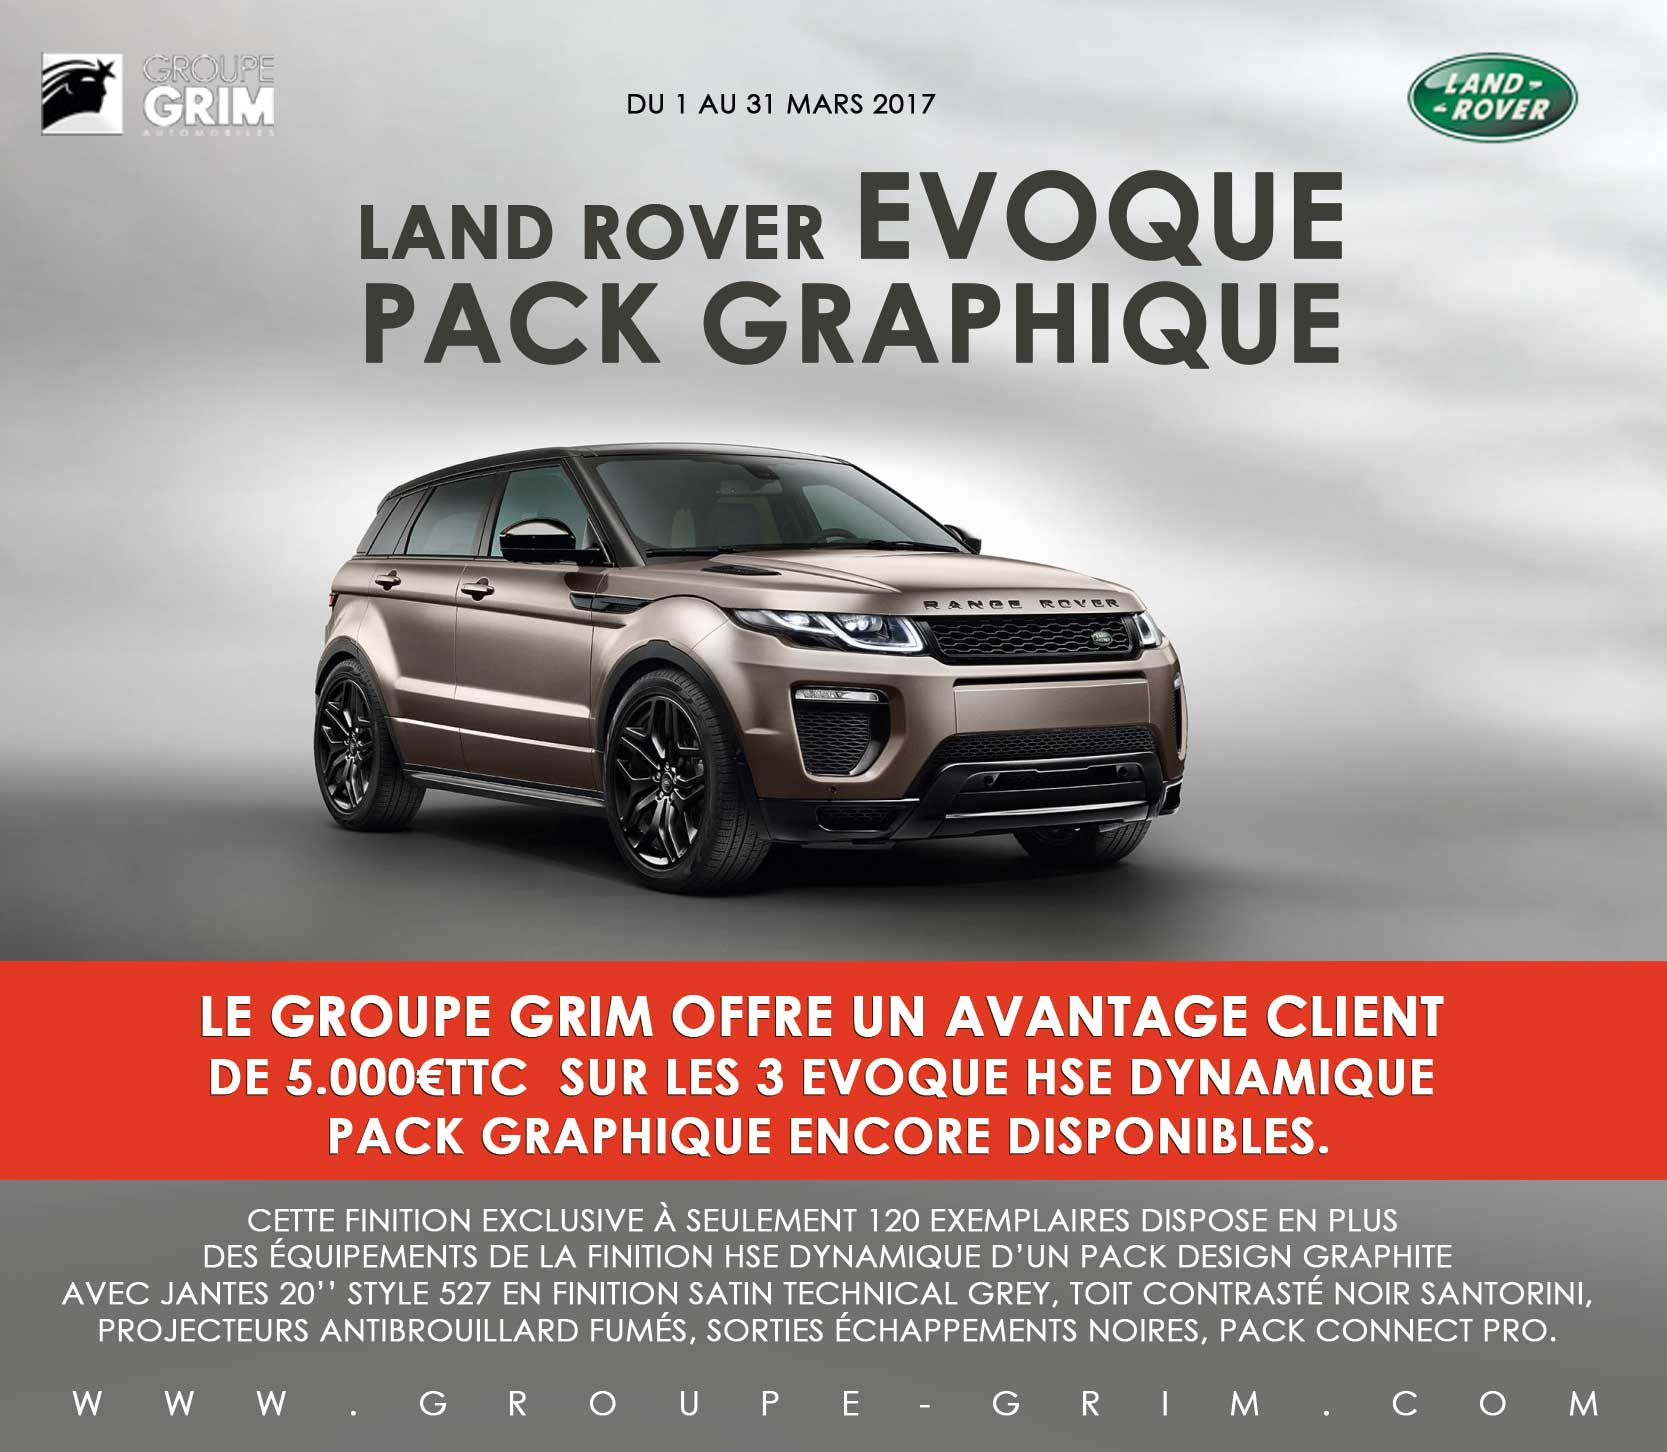 land rover evoque pack graphique jaguar montpellier land rover montpellier. Black Bedroom Furniture Sets. Home Design Ideas